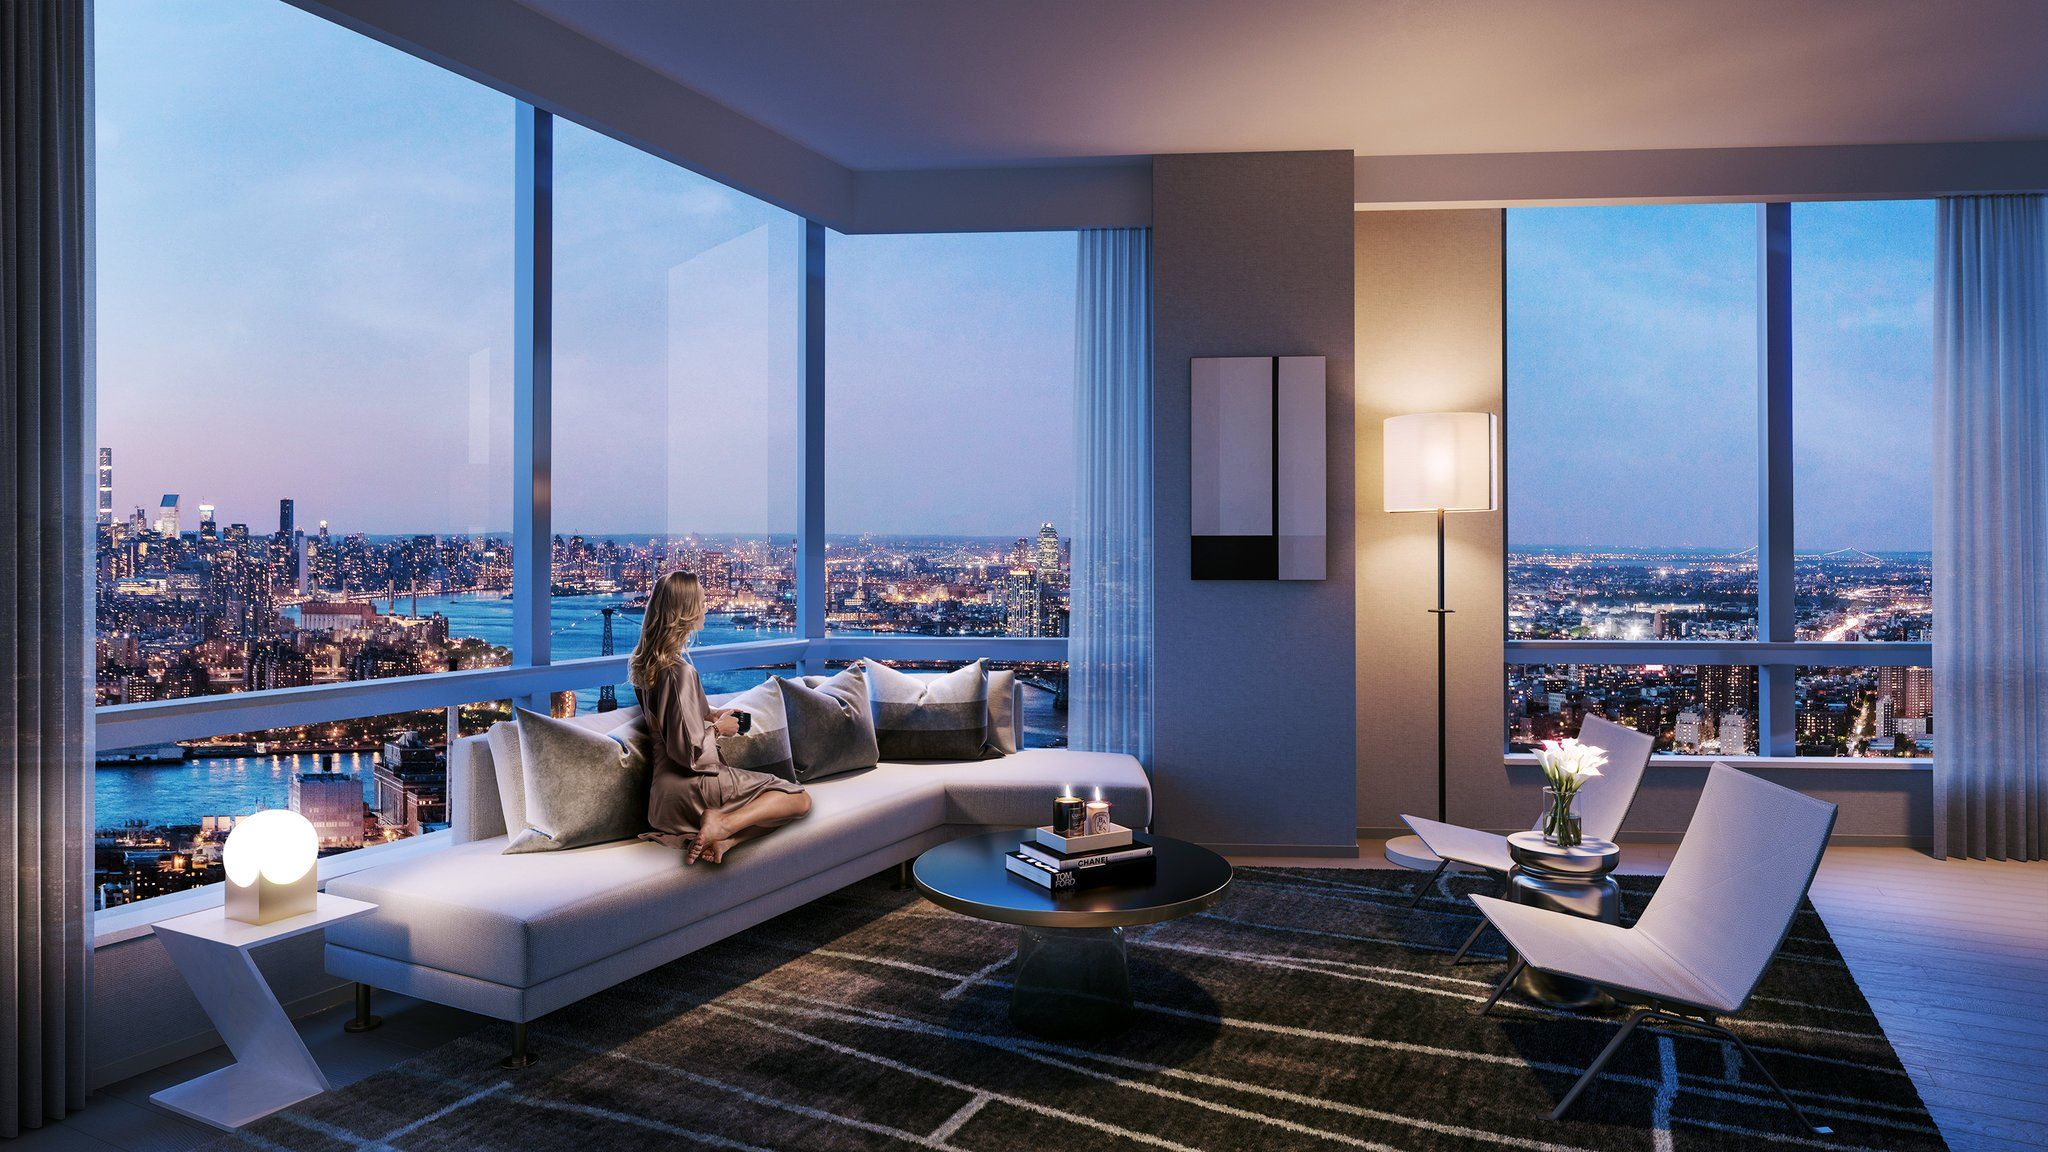 Brooklyn Point Extell S First Brooklyn Tower Aims High Nyc Apartment Luxury Luxury Apartment Decor Luxury Apartments